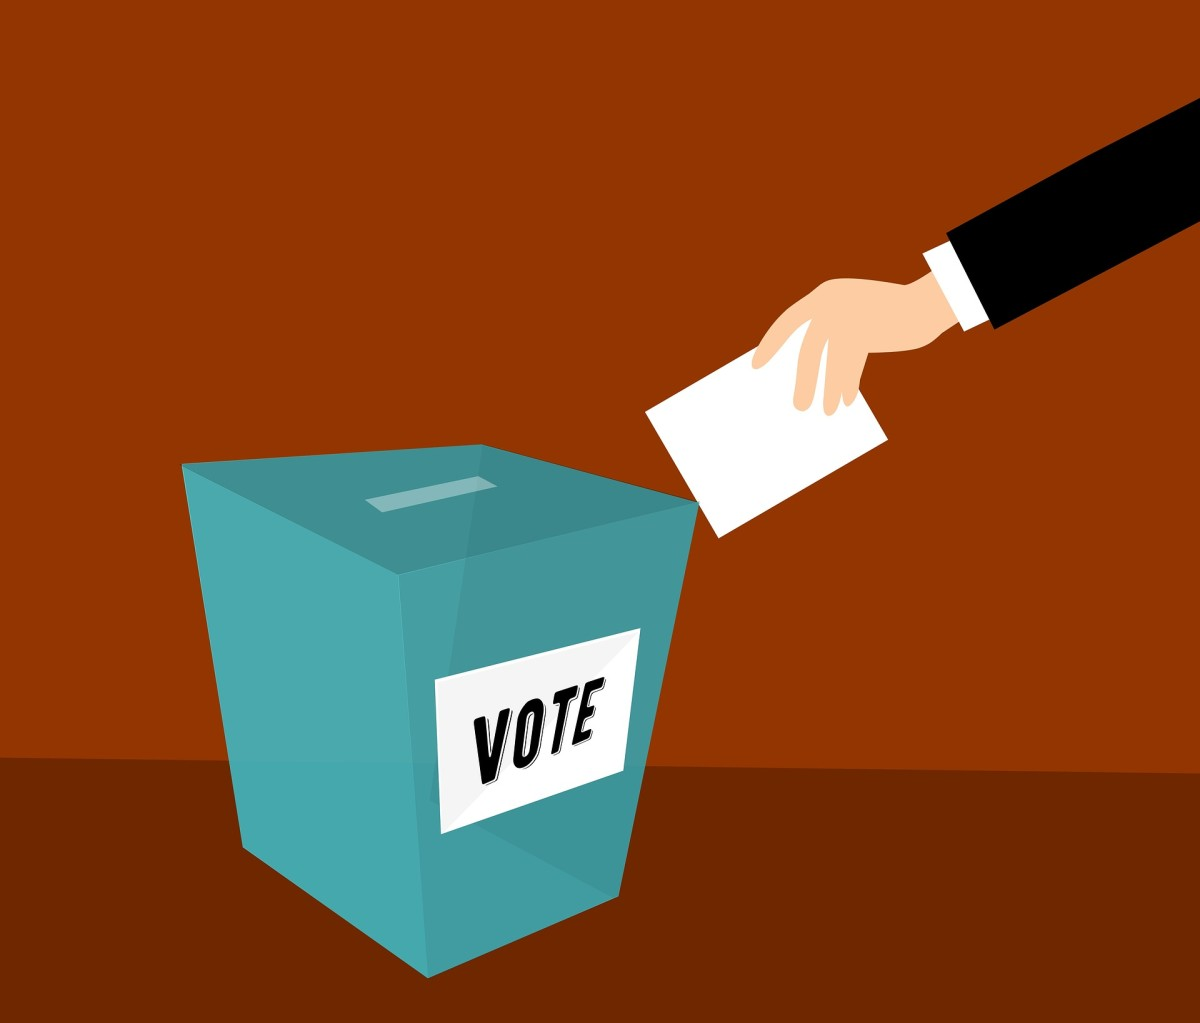 Voting is one of the most important civic responsibilities for US residents and citizens and this is what we must do to ensure that Donald Trump is not reelected.